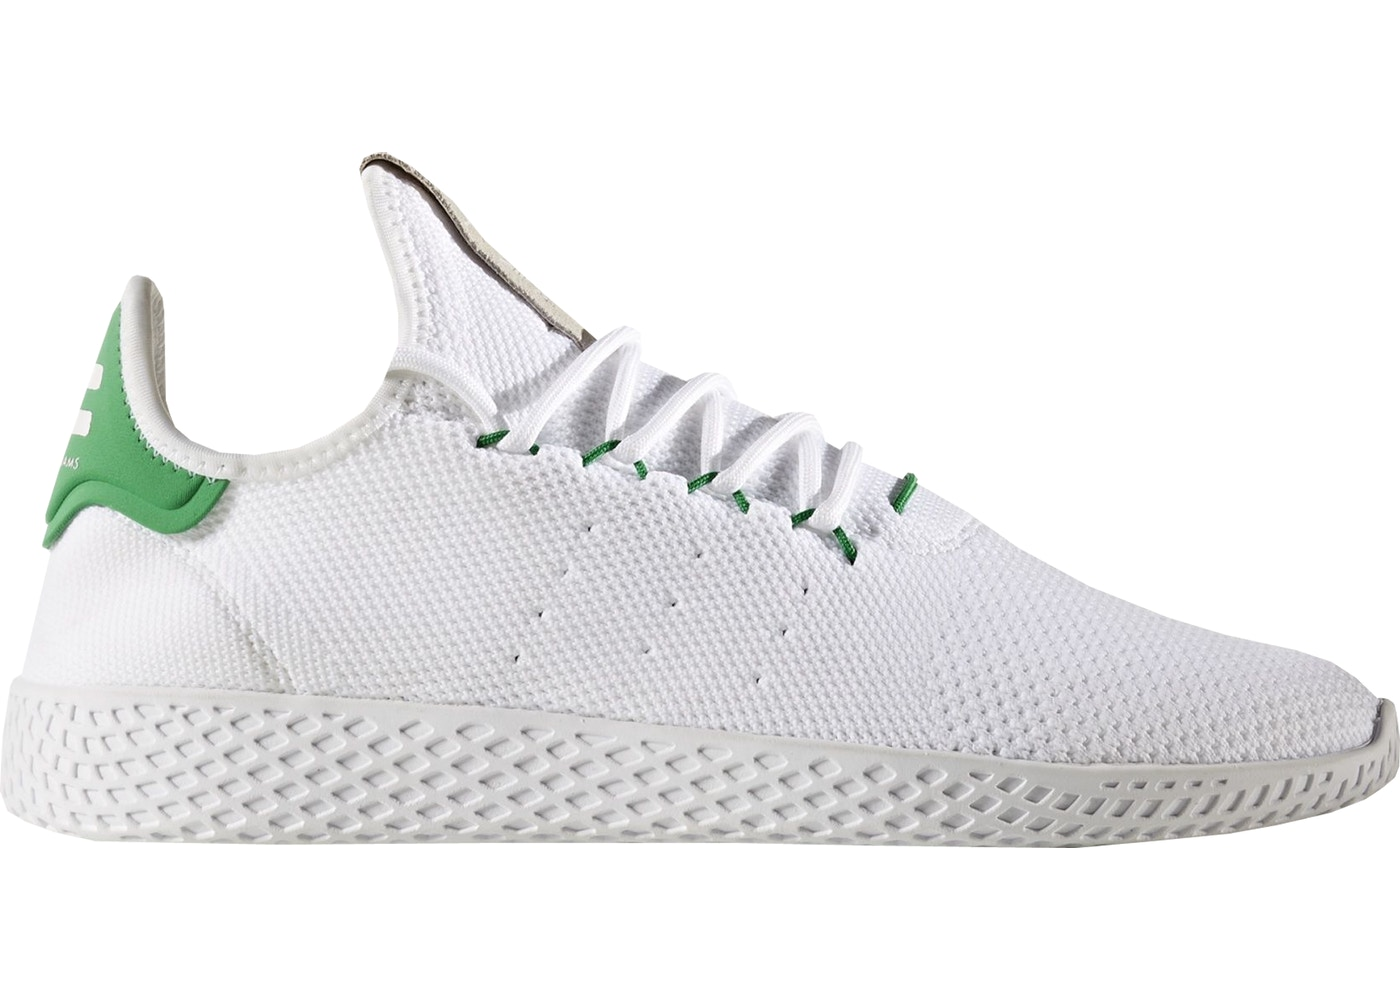 on sale ebb9f 25827 adidas Tennis HU Pharrell White Green - BA7828